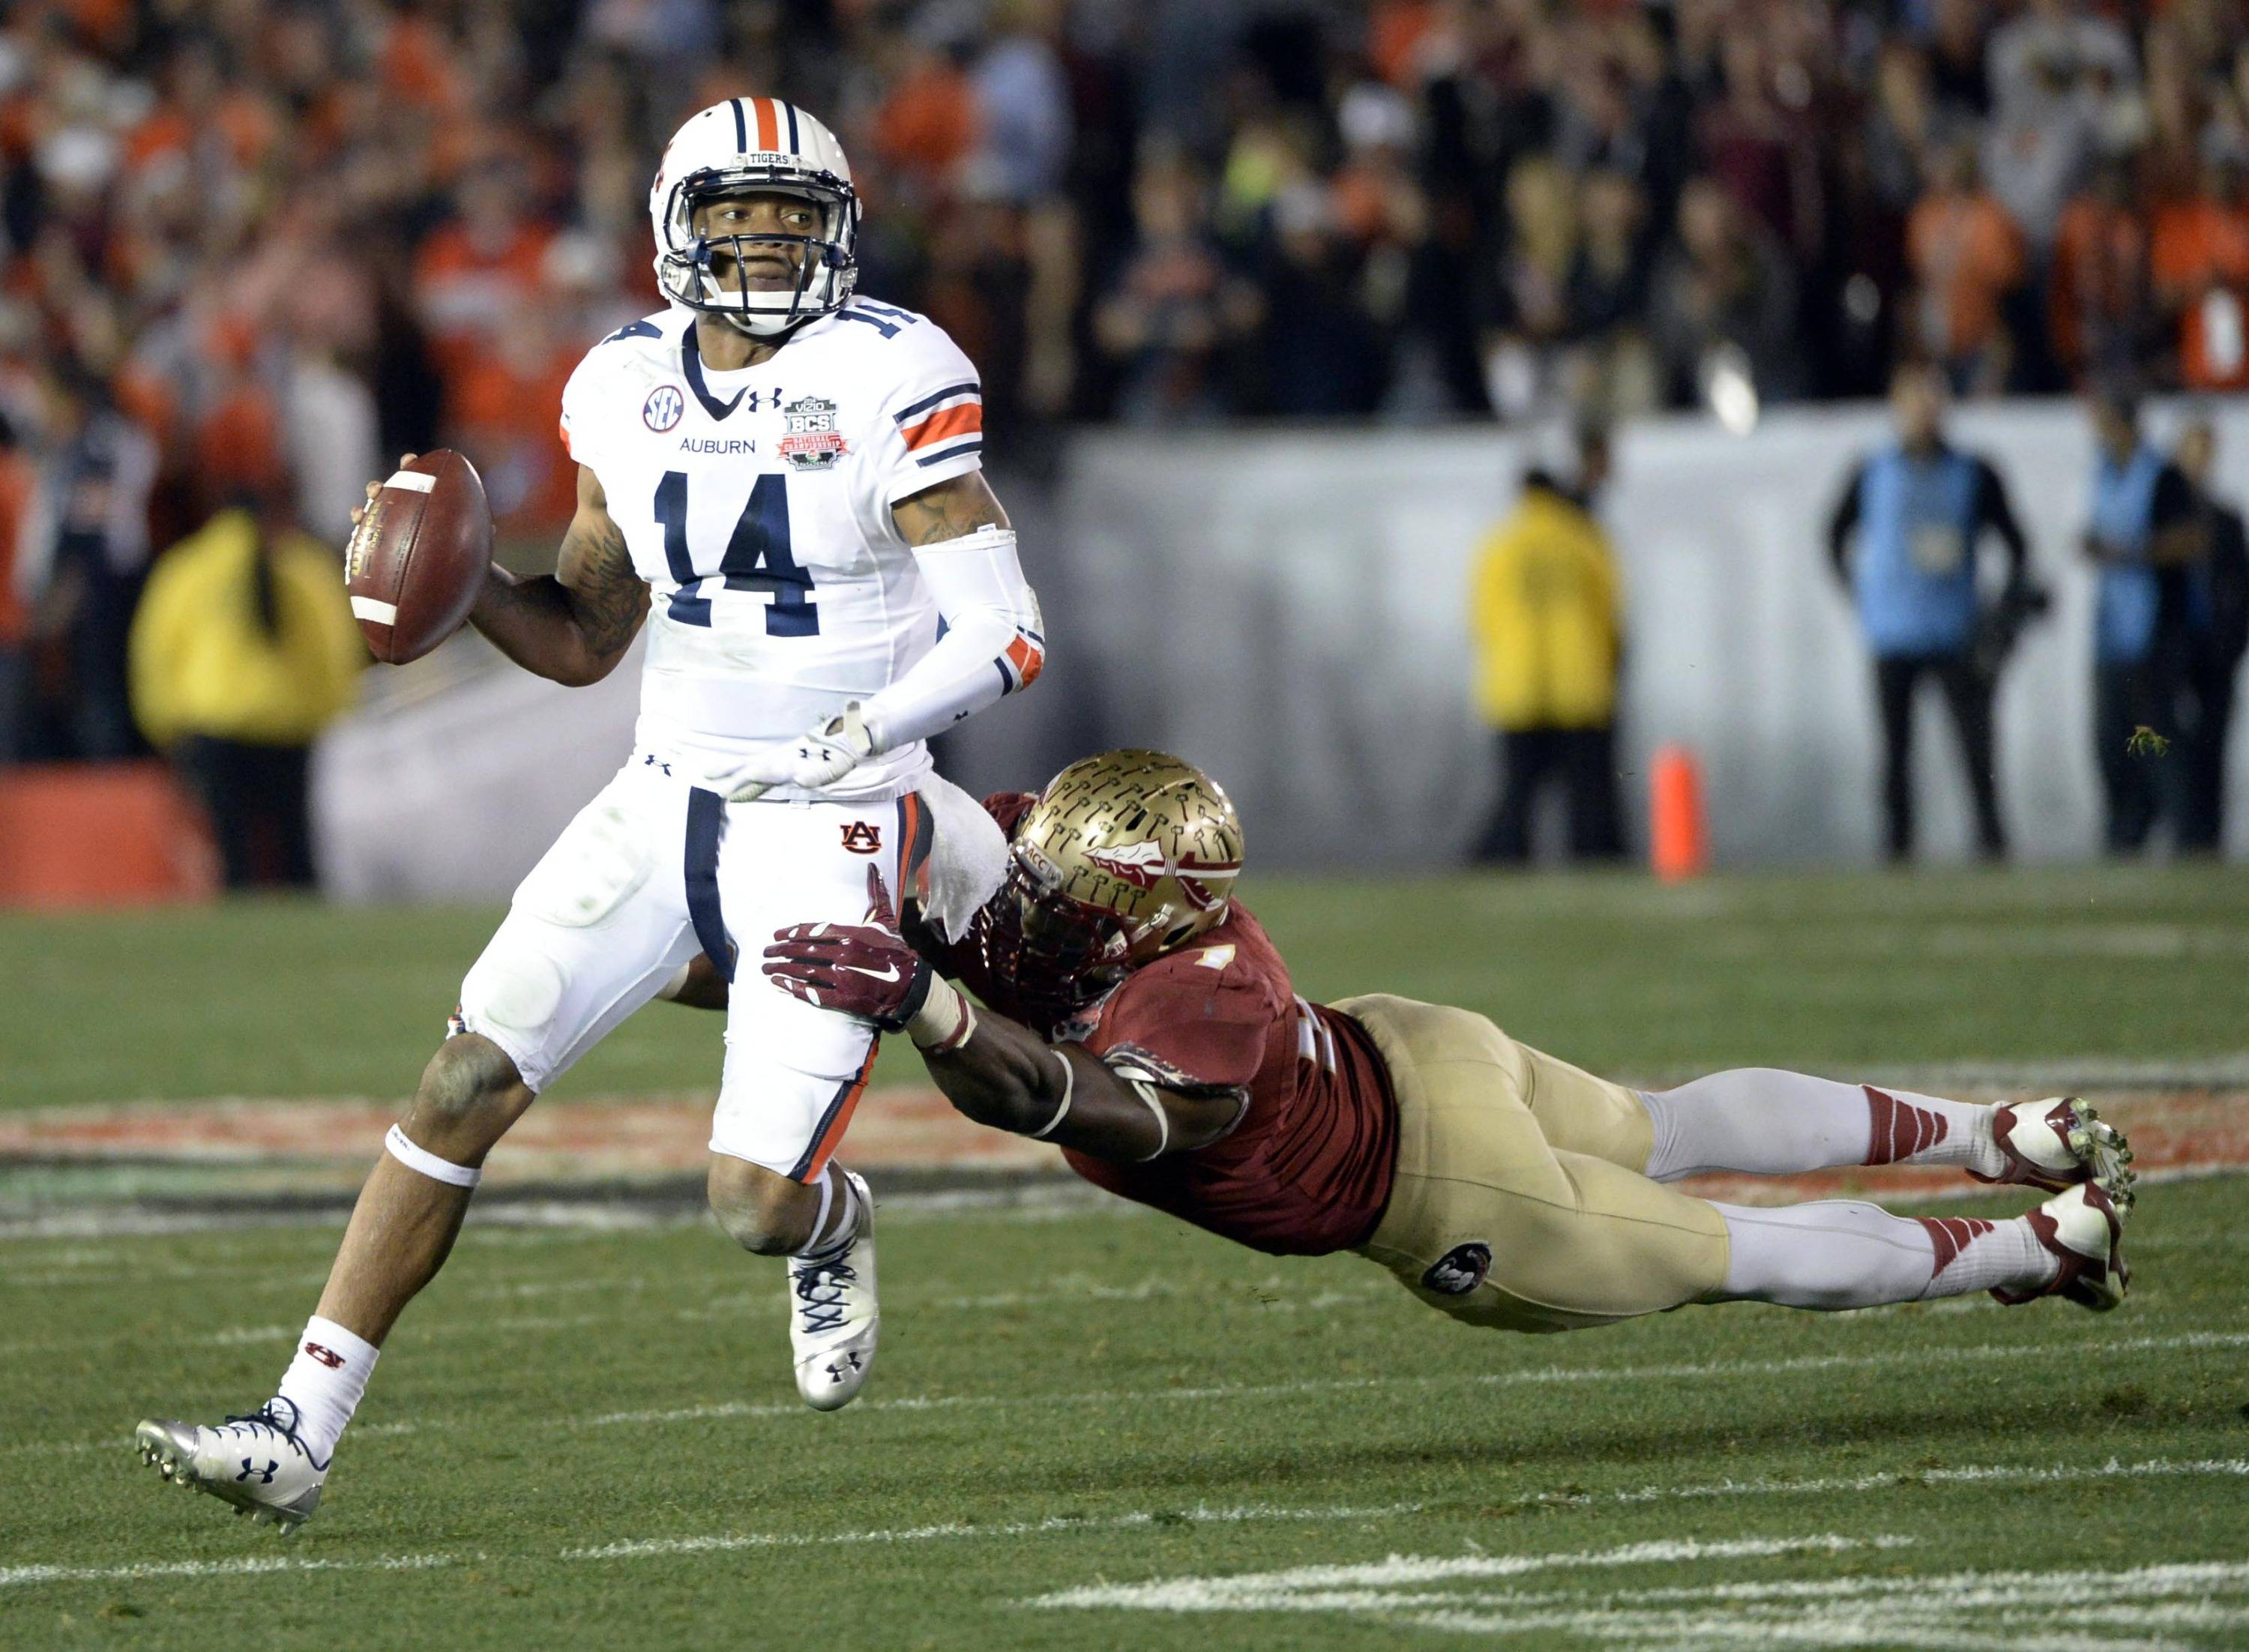 Jan 6, 2014; Pasadena, CA, USA; Florida State Seminoles linebacker Christian Jones (7) tries to tackle Auburn Tigers quarterback Nick Marshall (14) during the first half of the 2014 BCS National Championship game at the Rose Bowl.  Mandatory Credit: Richard Mackson-USA TODAY Sports